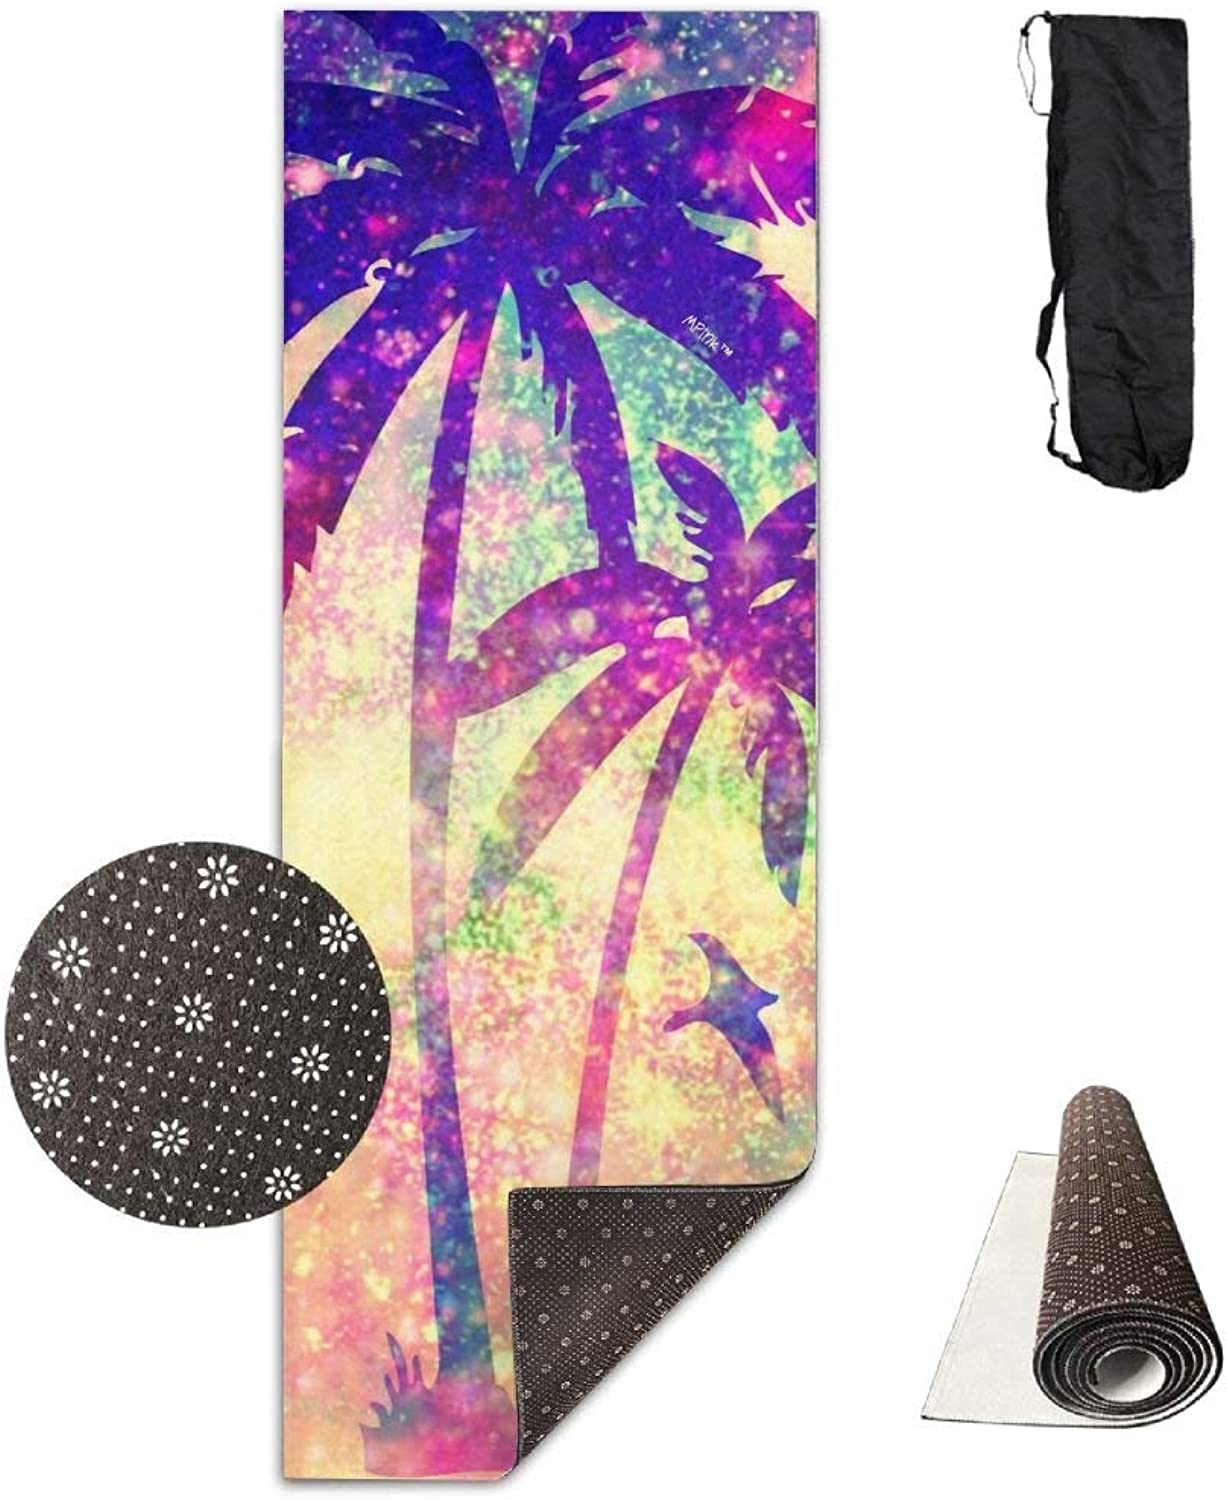 colorful Fluorescent Palm Trees Yoga Mat 72X24 Inch Premium Print NonSlip EcoFriendly AntiTear Floor Pilates Exercise Mat for Yoga, Workout, Fitness with Carrying Strap